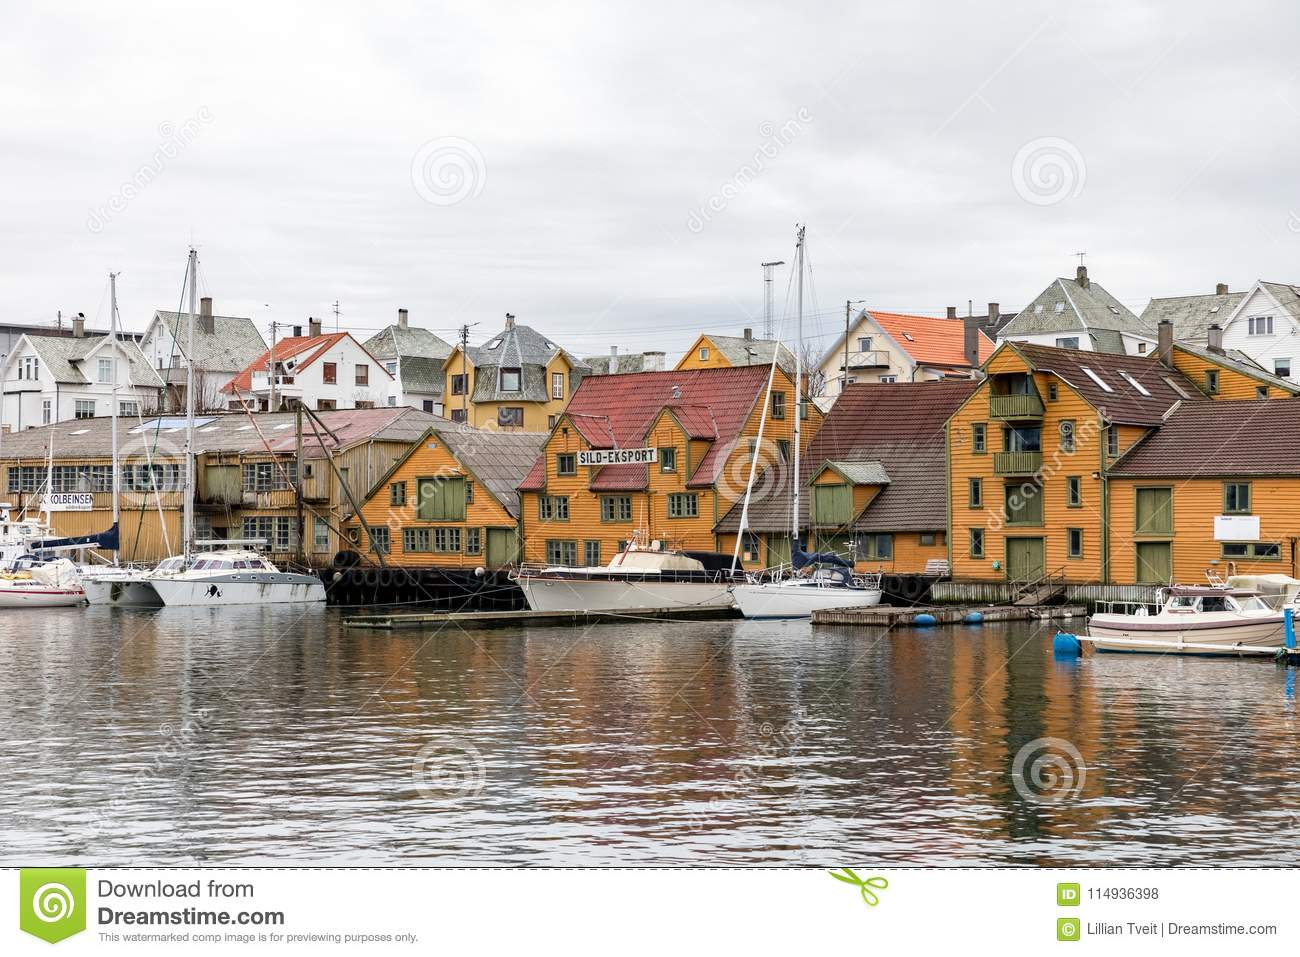 Haugesund, Norway - January 9, 2018: Old Wooden Houses On The Island